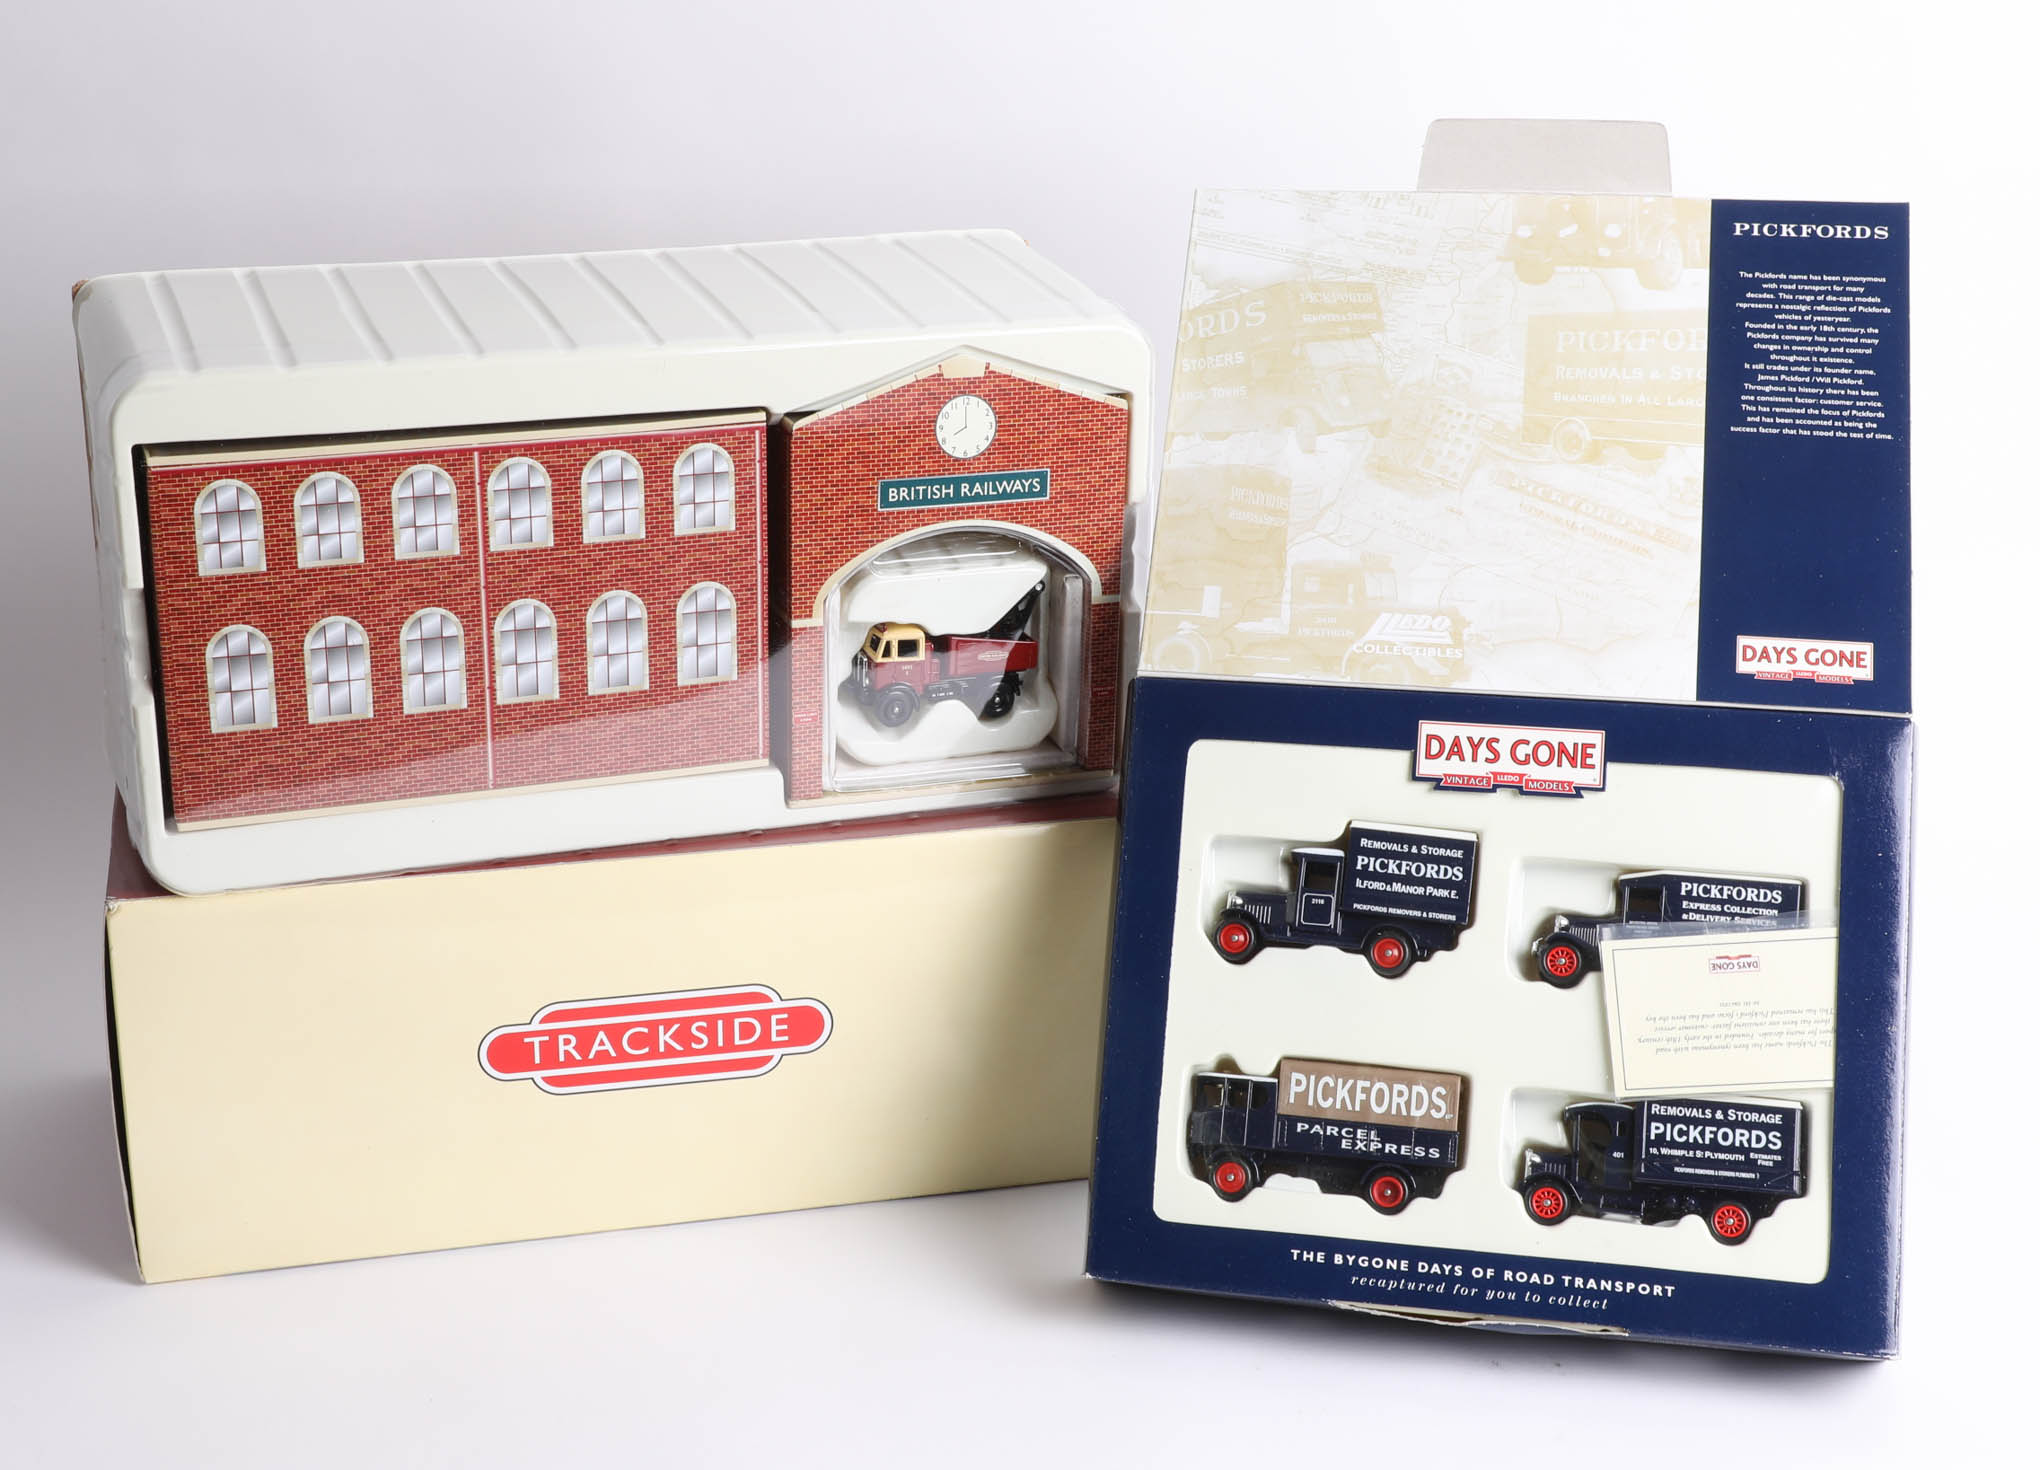 Lot 032 - Two Days Gone 'The Bygone Days of Road Transport' sets including a British Rail depot and A.E.C.